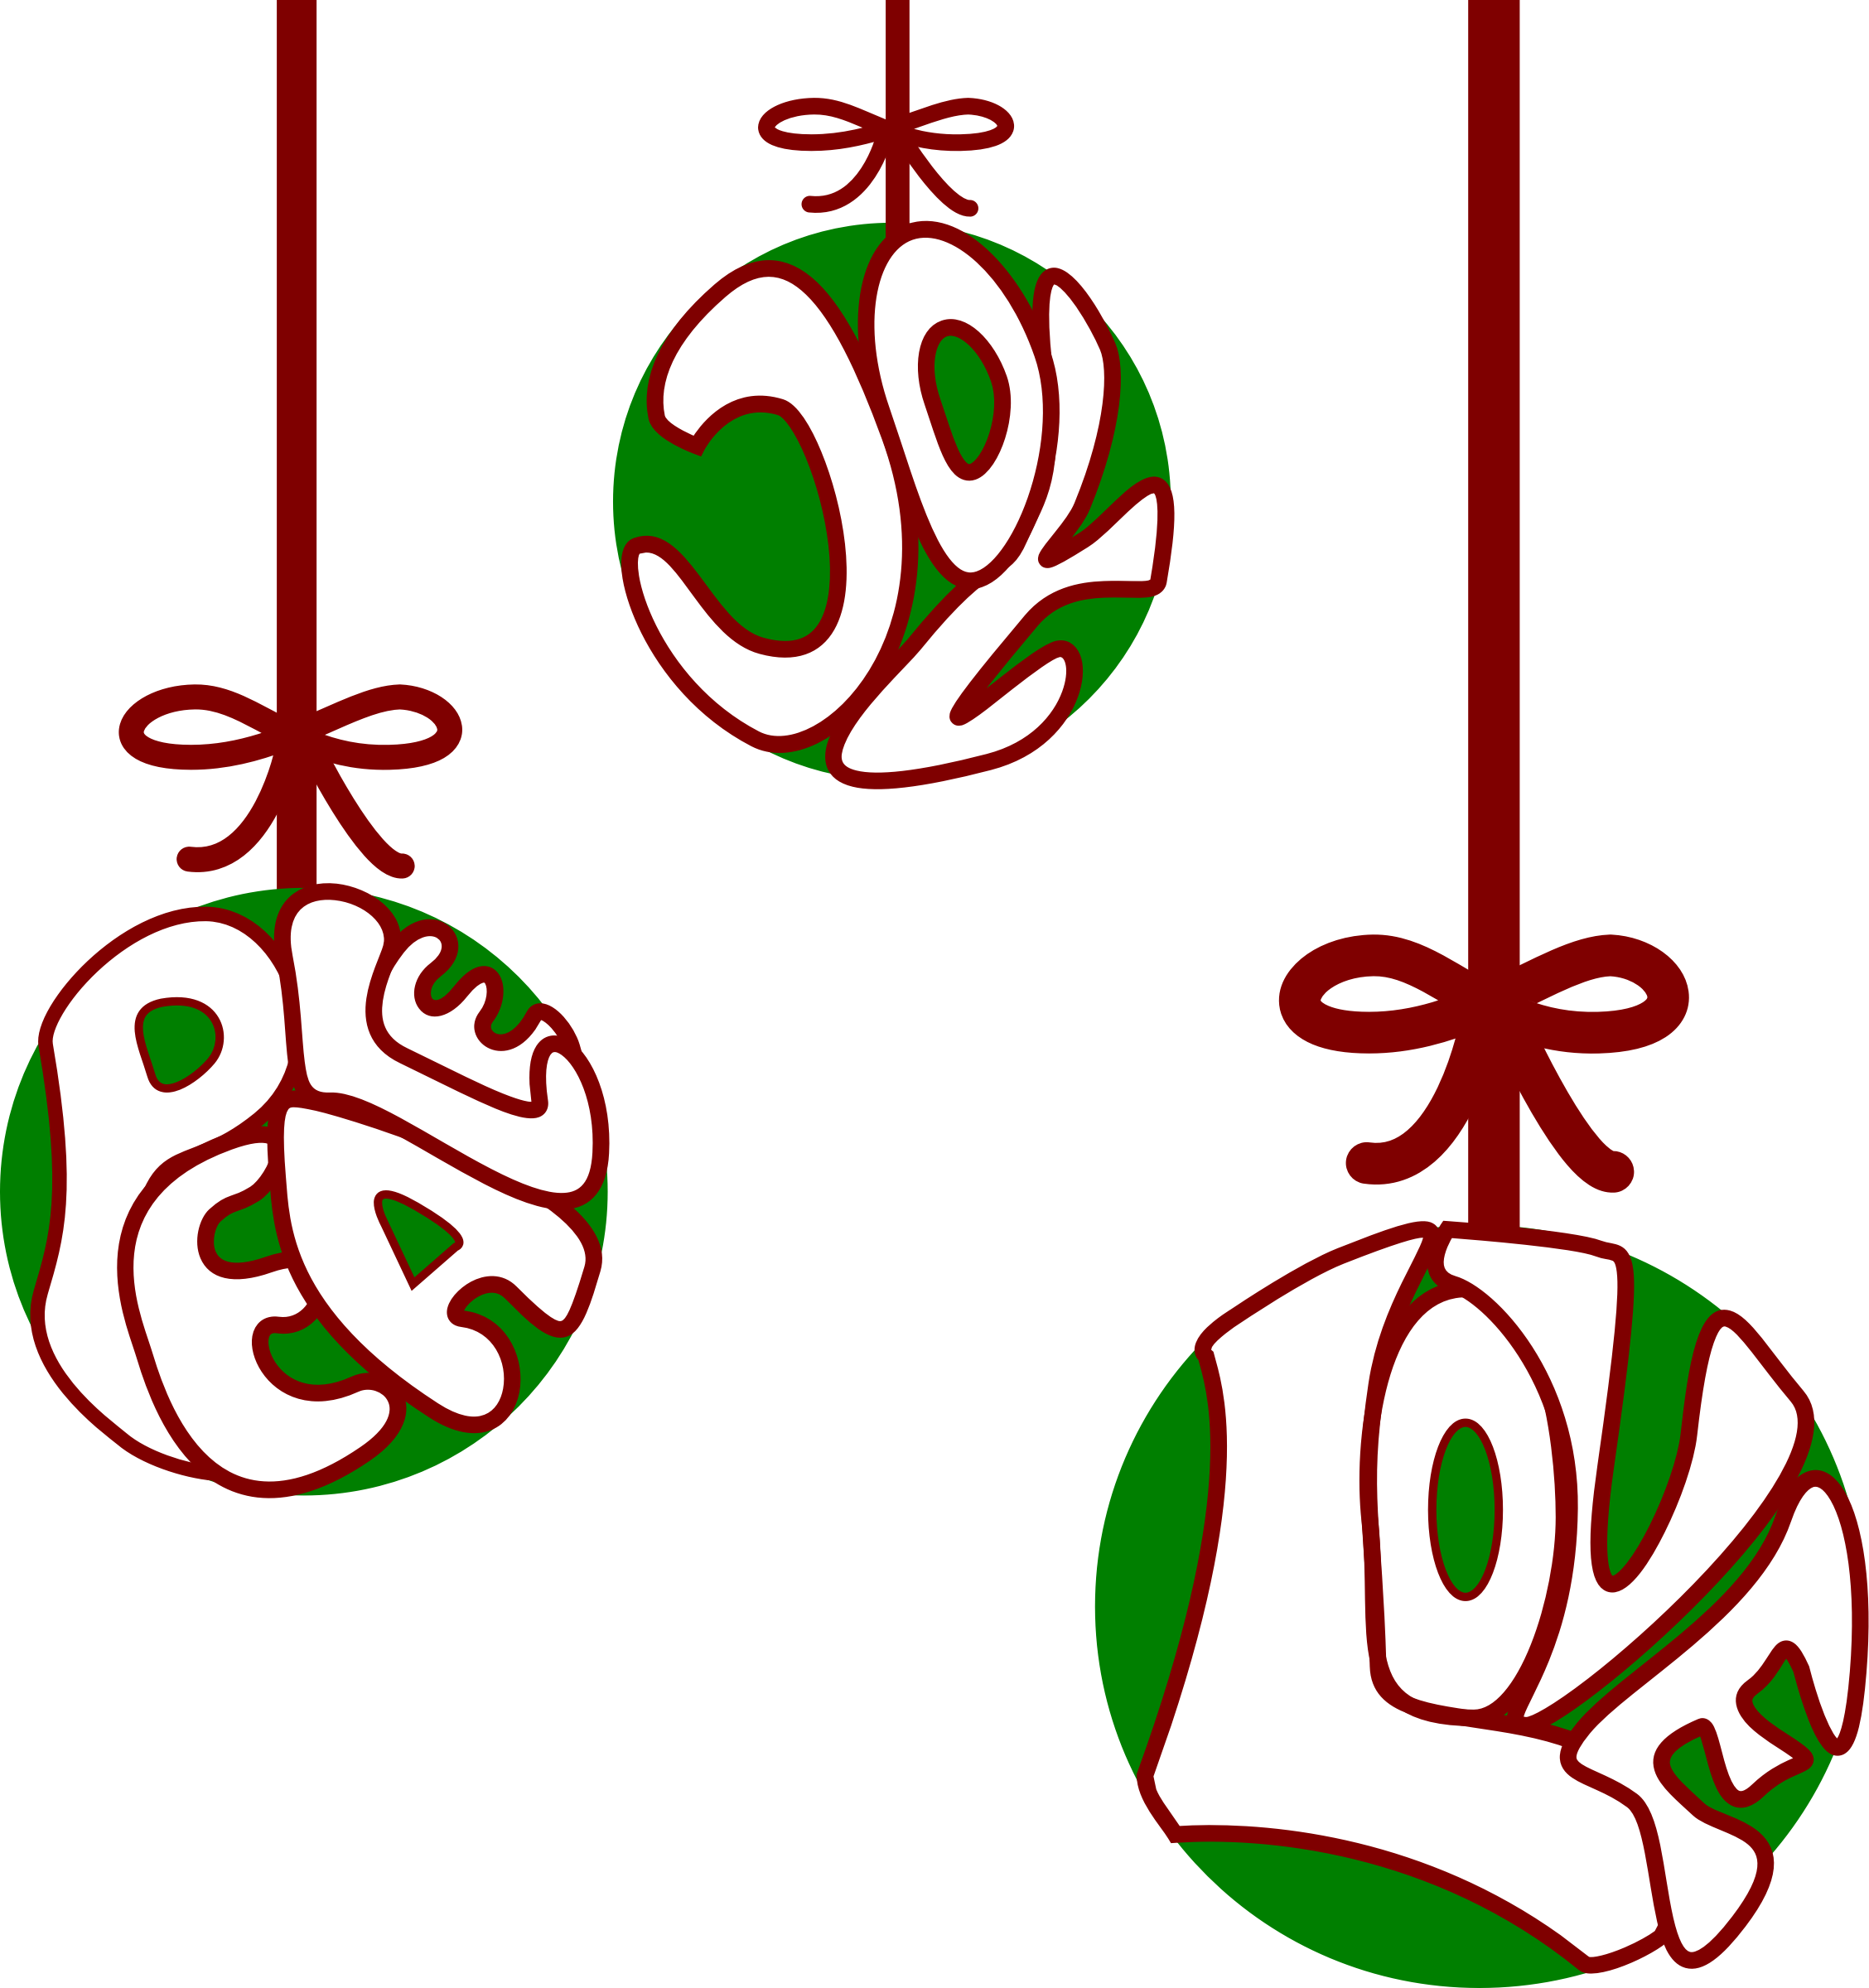 Christmas png peace love joy ornaments. Clipart big image